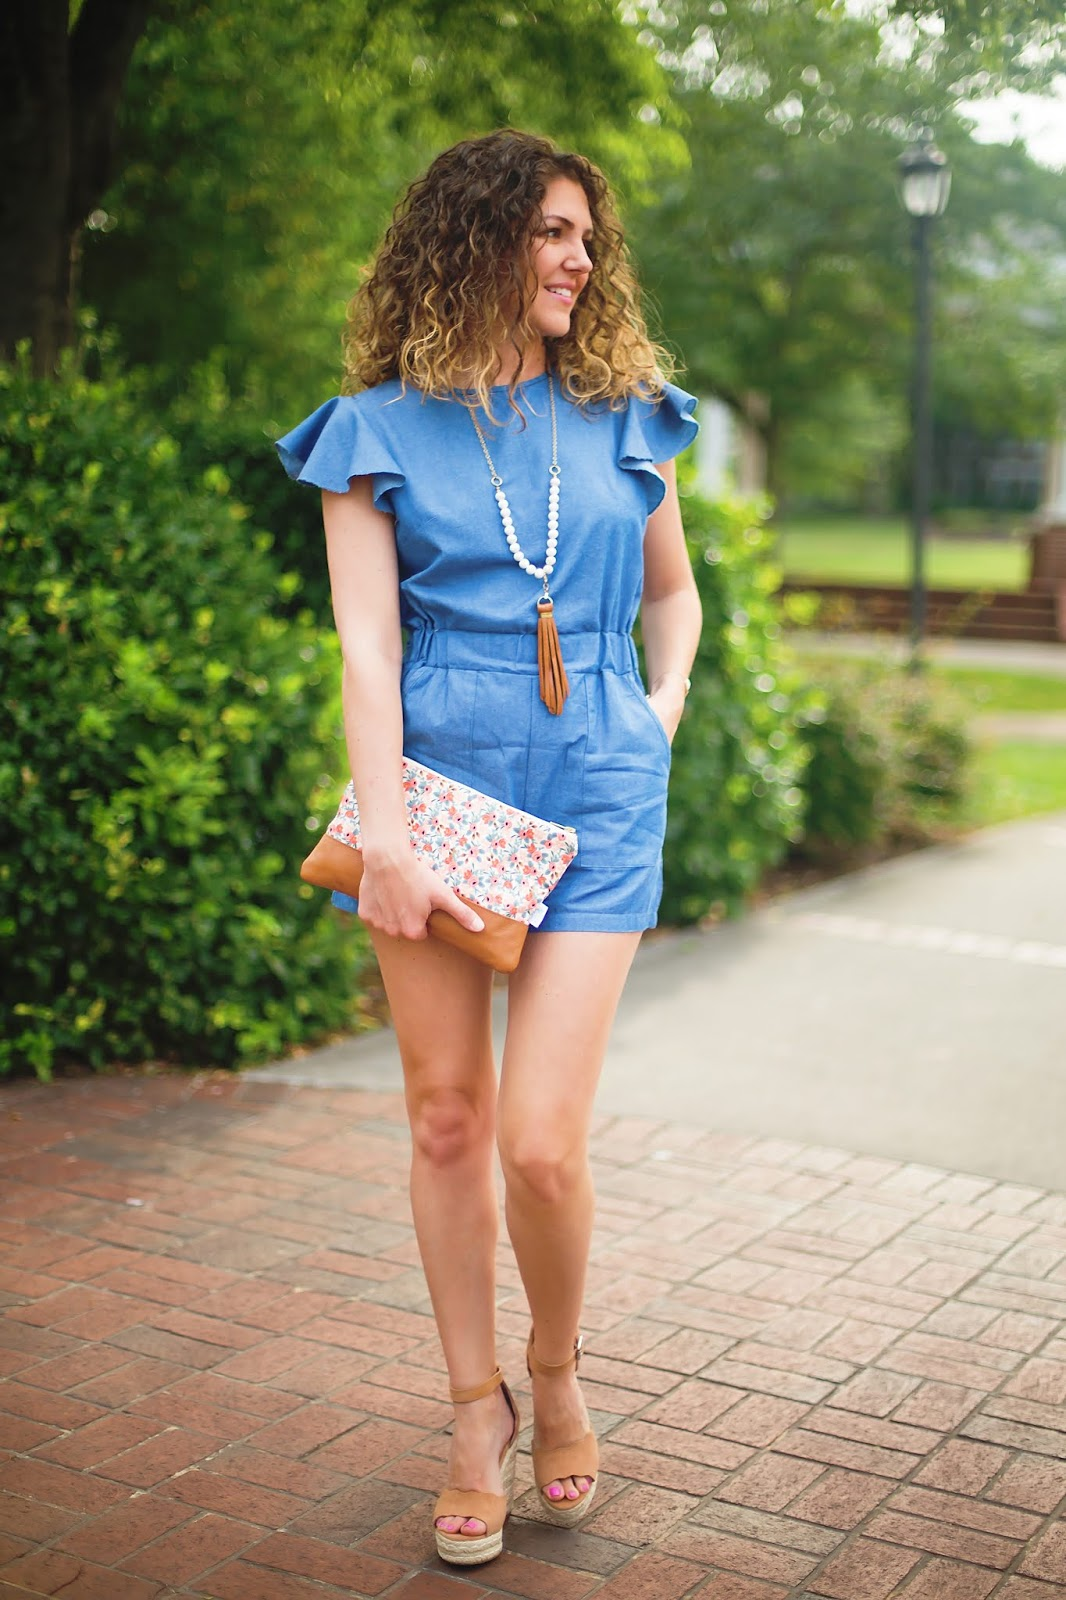 Jenn Pennell, Shaw Avenue blog, wears a denim romper from Amazon, Steve Madden scalloped wedges, floral clutch, and leather necklace.